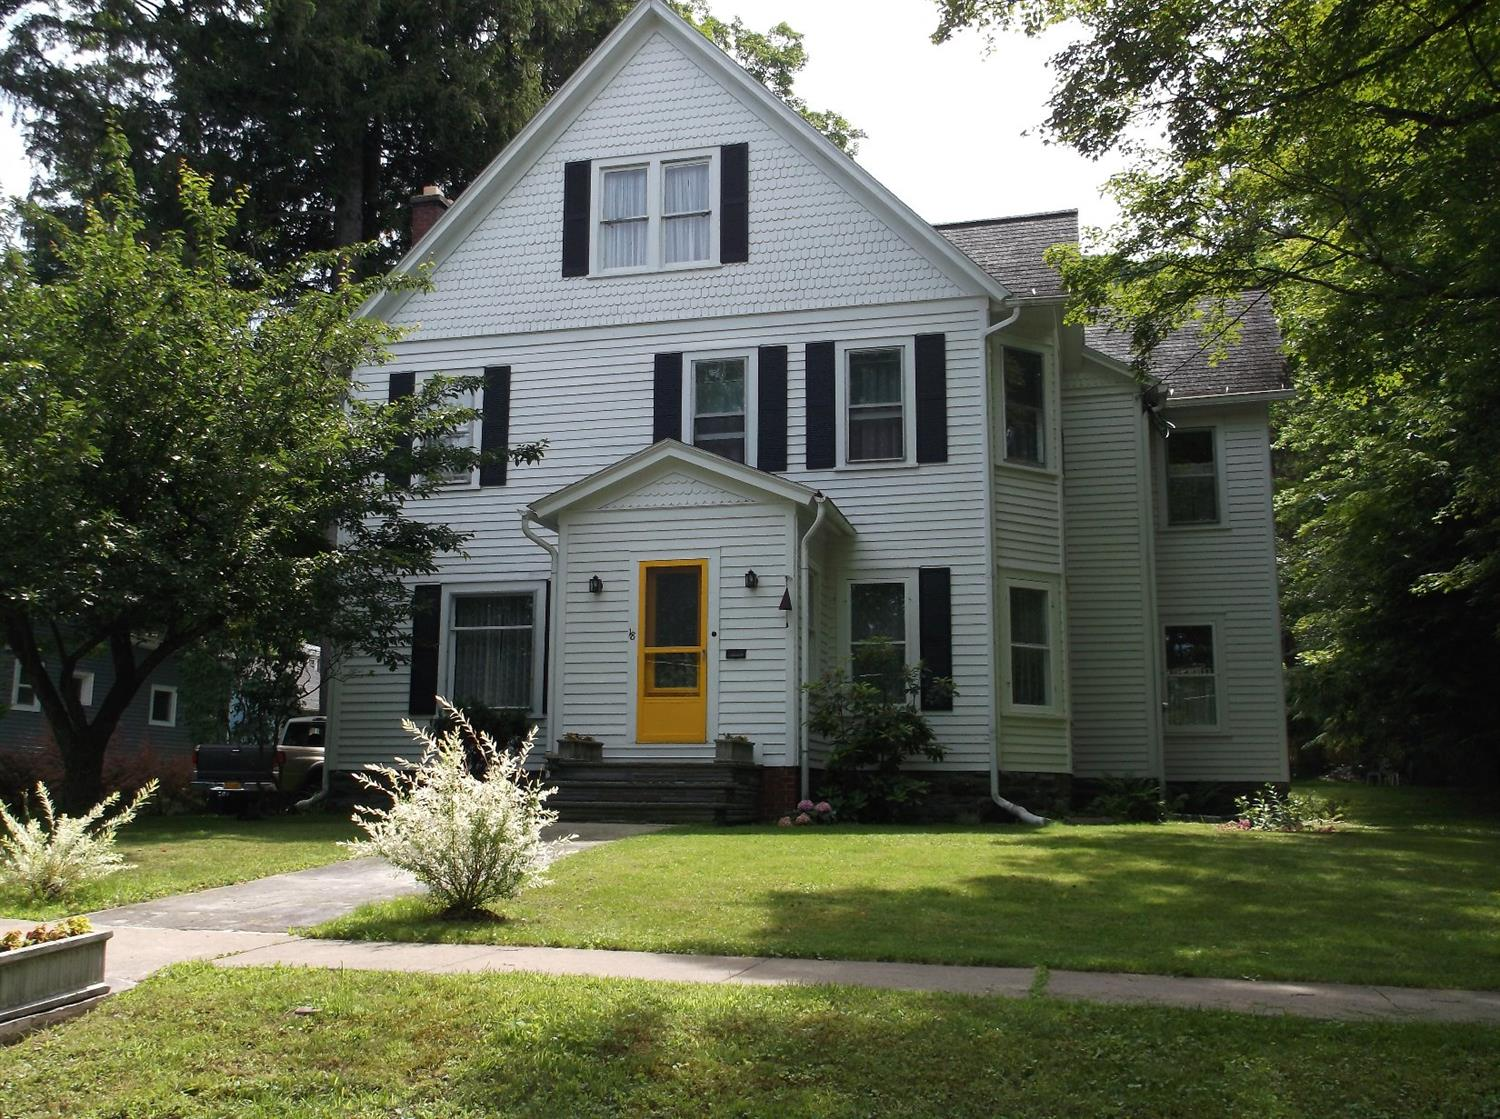 149,900 - 4 Bedrooms, 1.5 Baths.25 AcreBeautifully Updated and Maintained